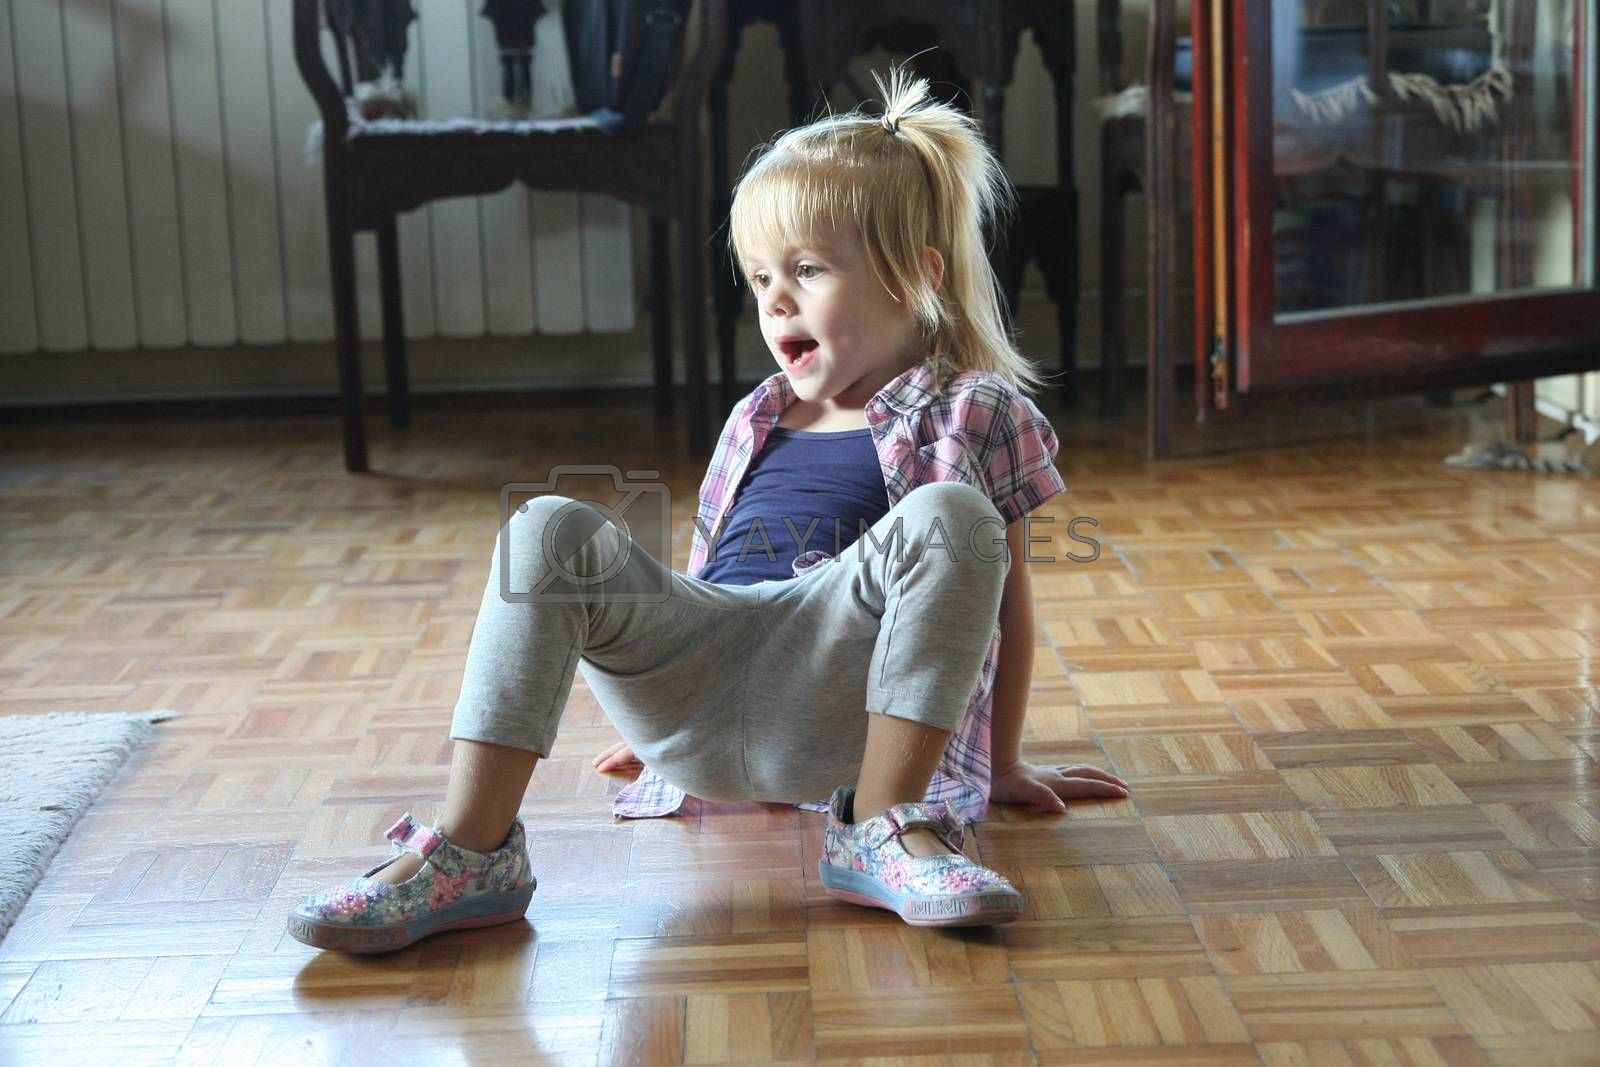 Cute young girl playing on the floor